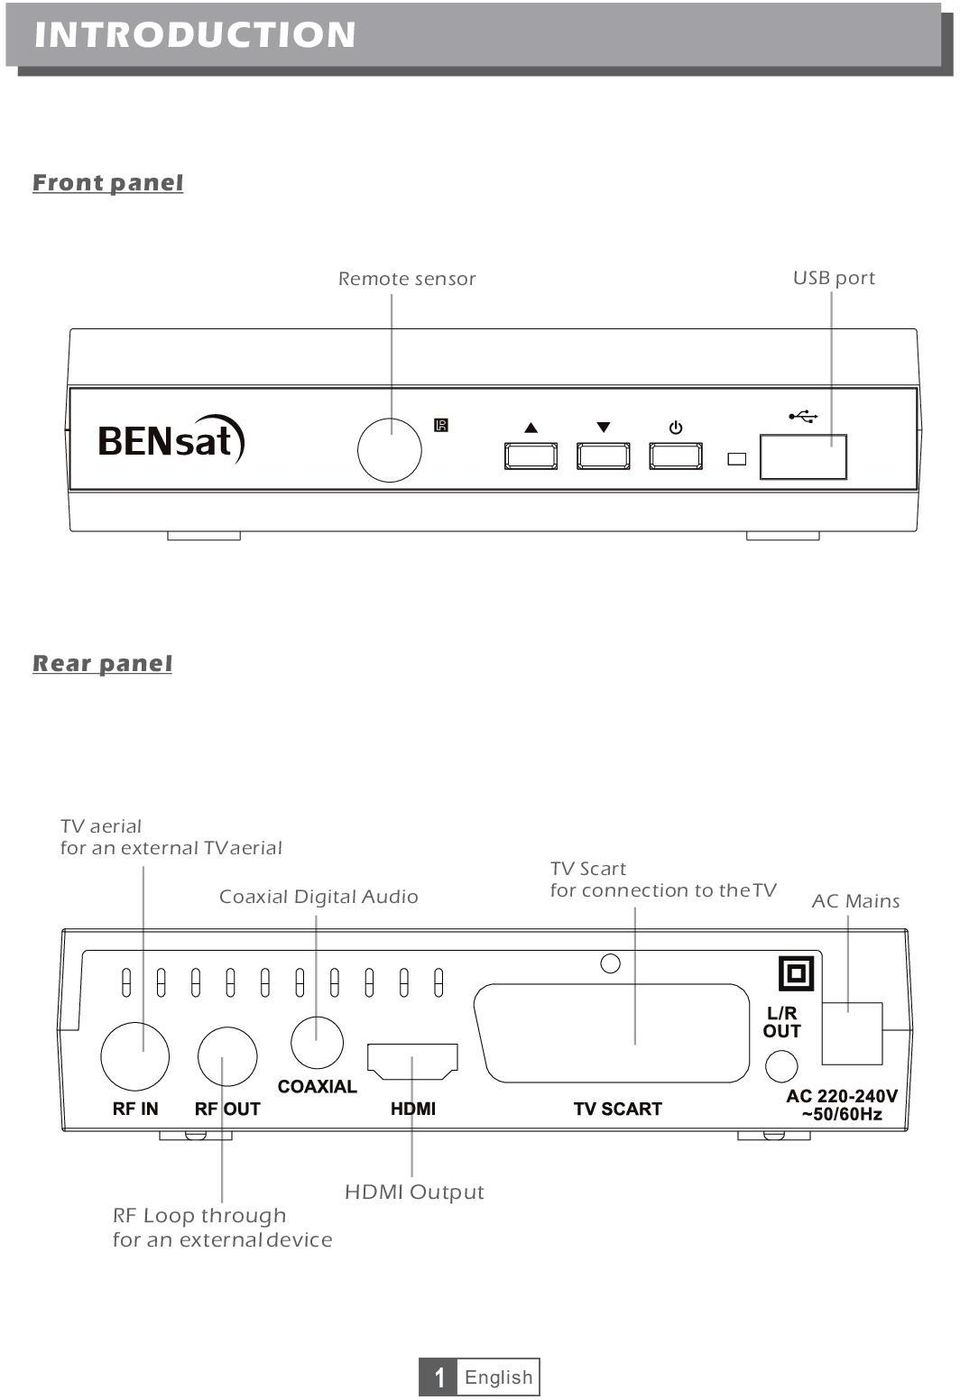 Digital Audio TV Scart for connection to the TV AC